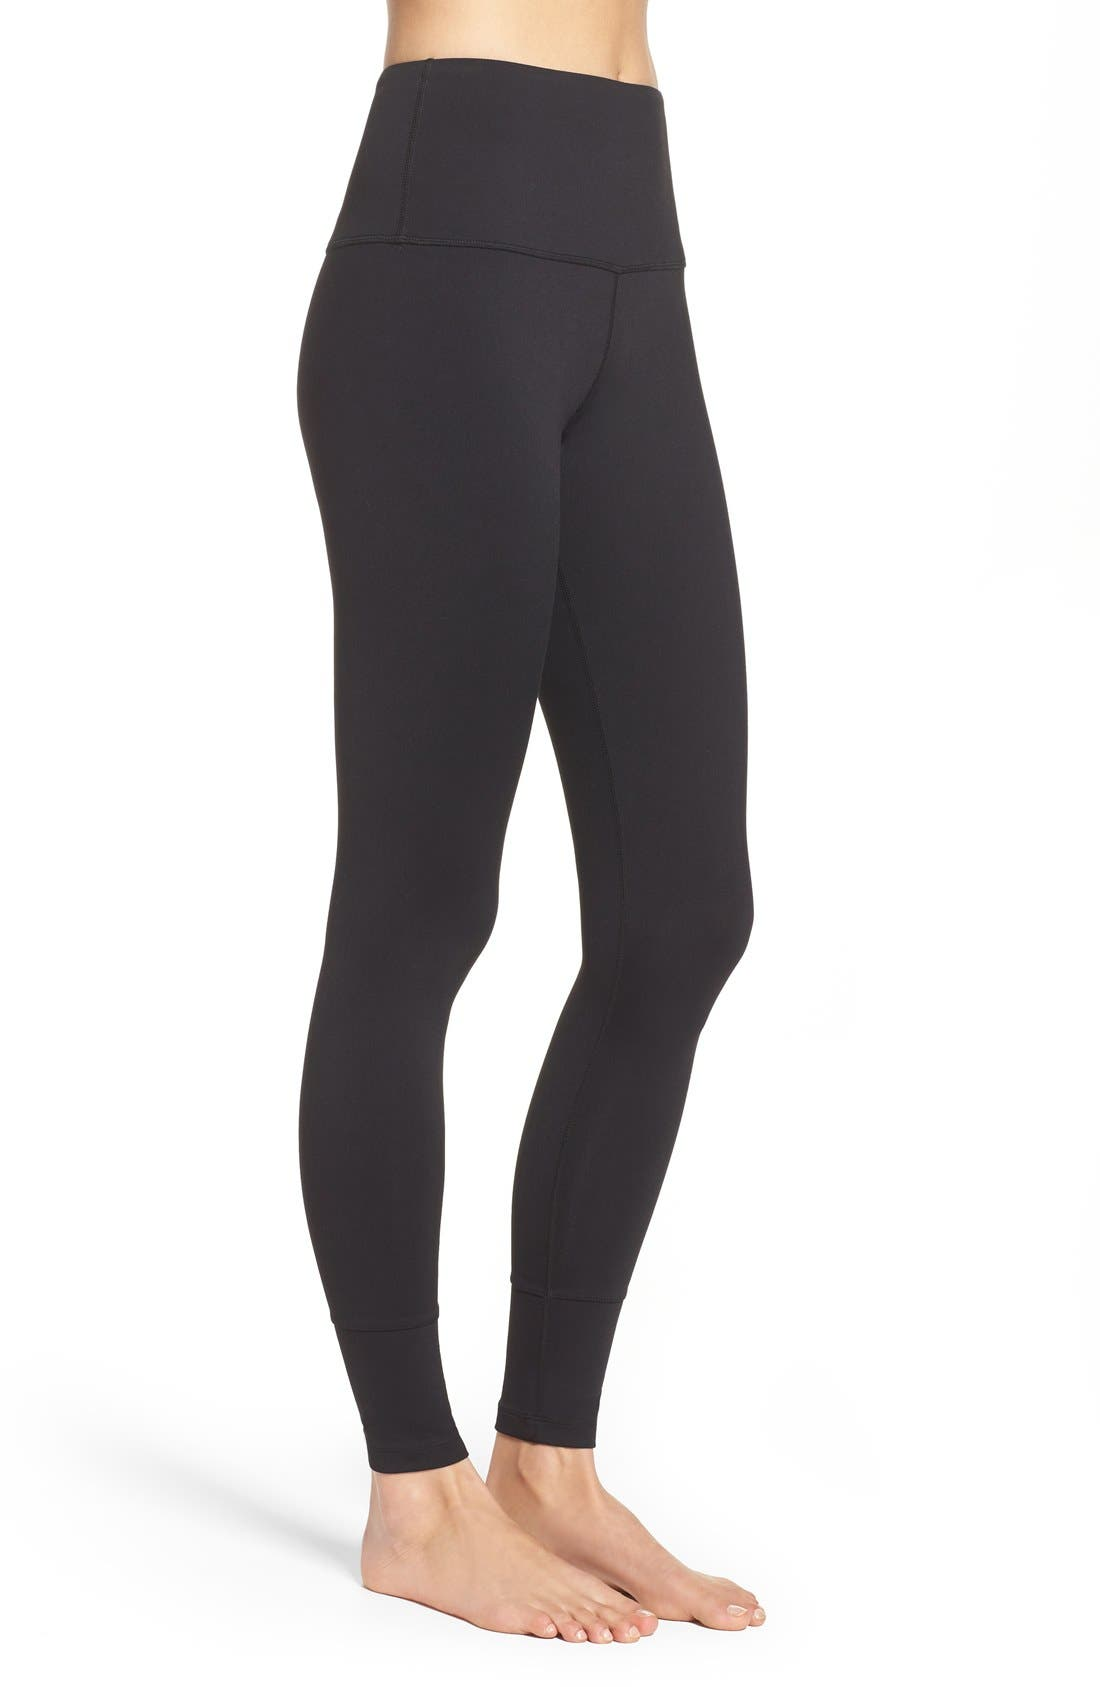 'Bardot' High Waist Leggings,                             Alternate thumbnail 4, color,                             001